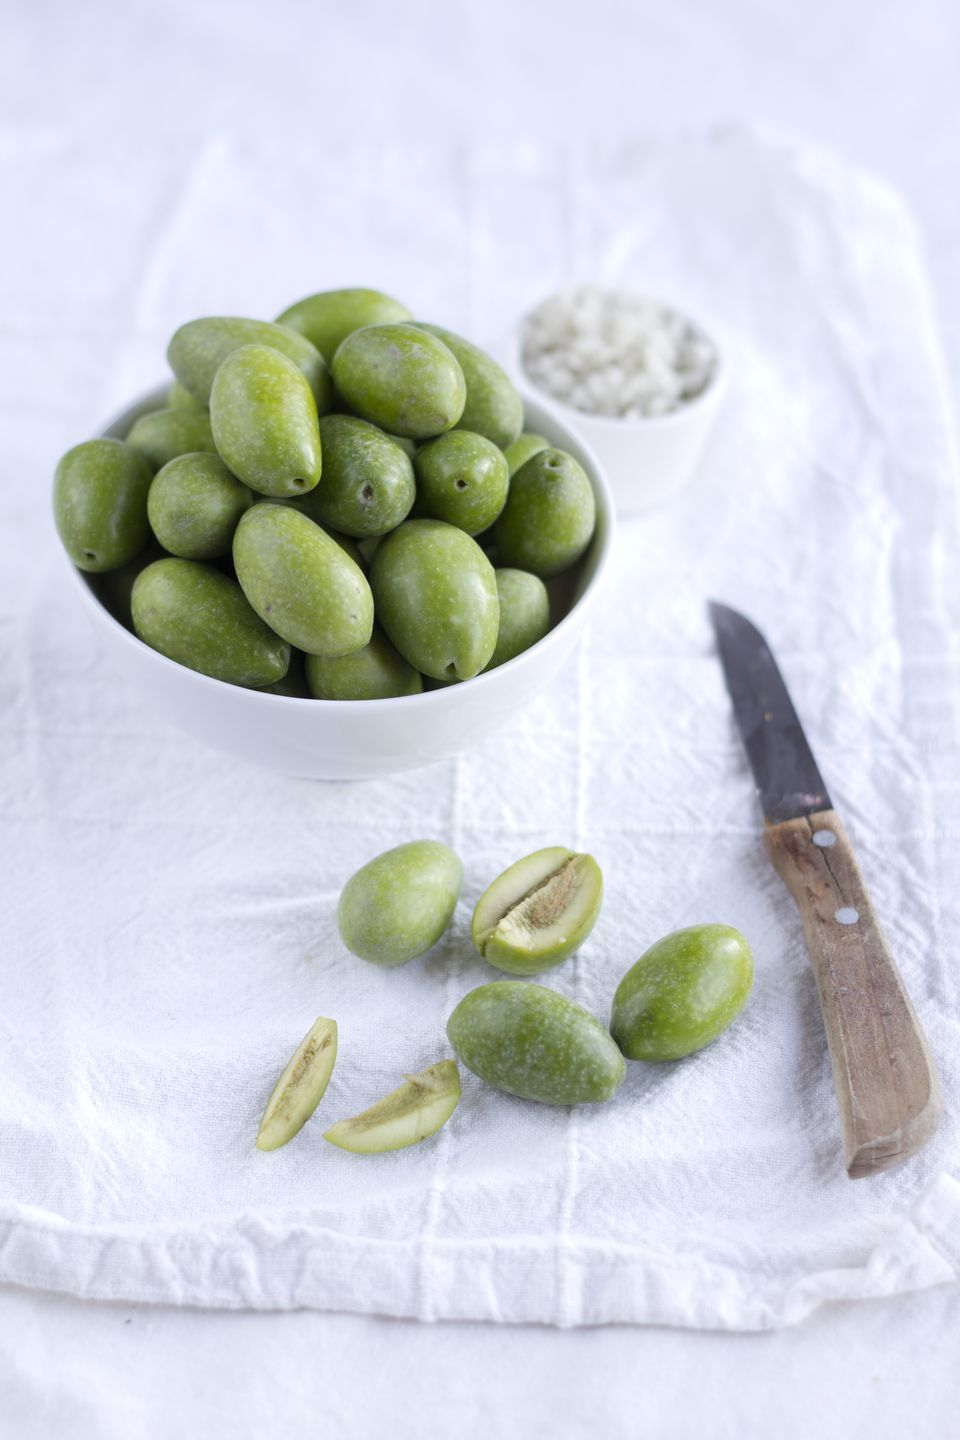 Preparing green olives for curing